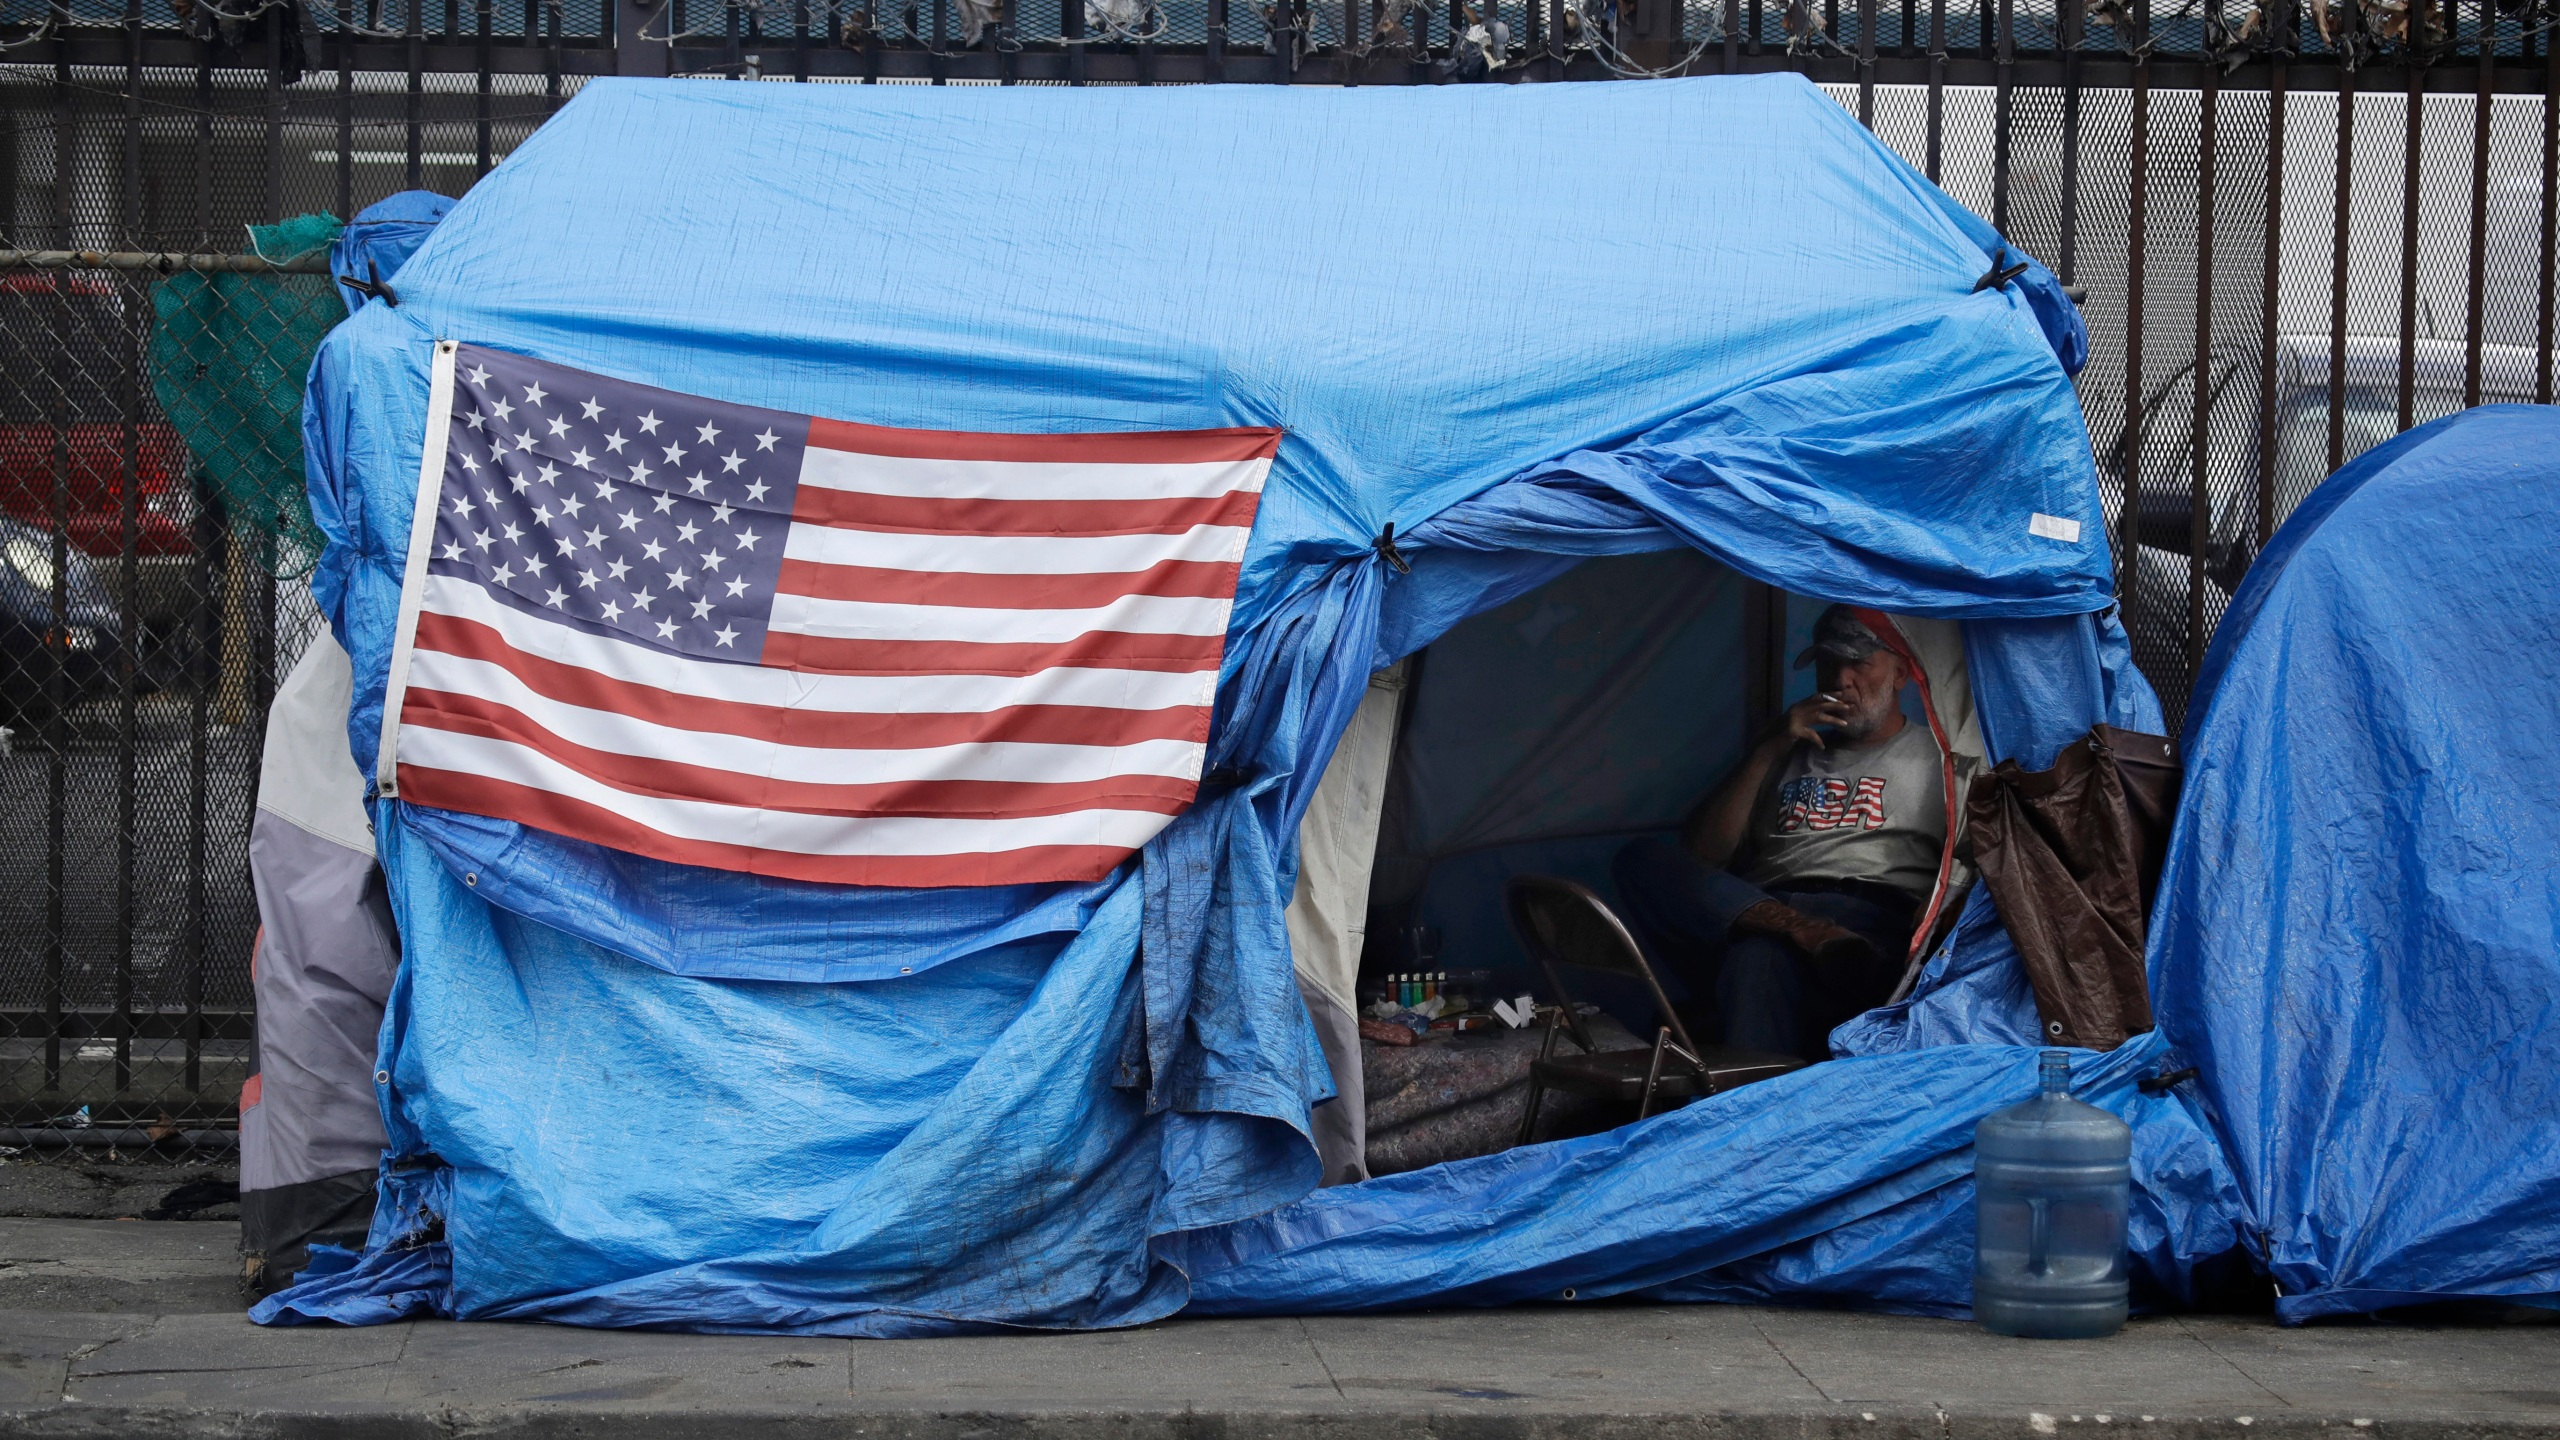 A man smokes inside a tent on skid row in Los Angeles on March 20, 2020. (Marcio Jose Sanchez / Associated Press)